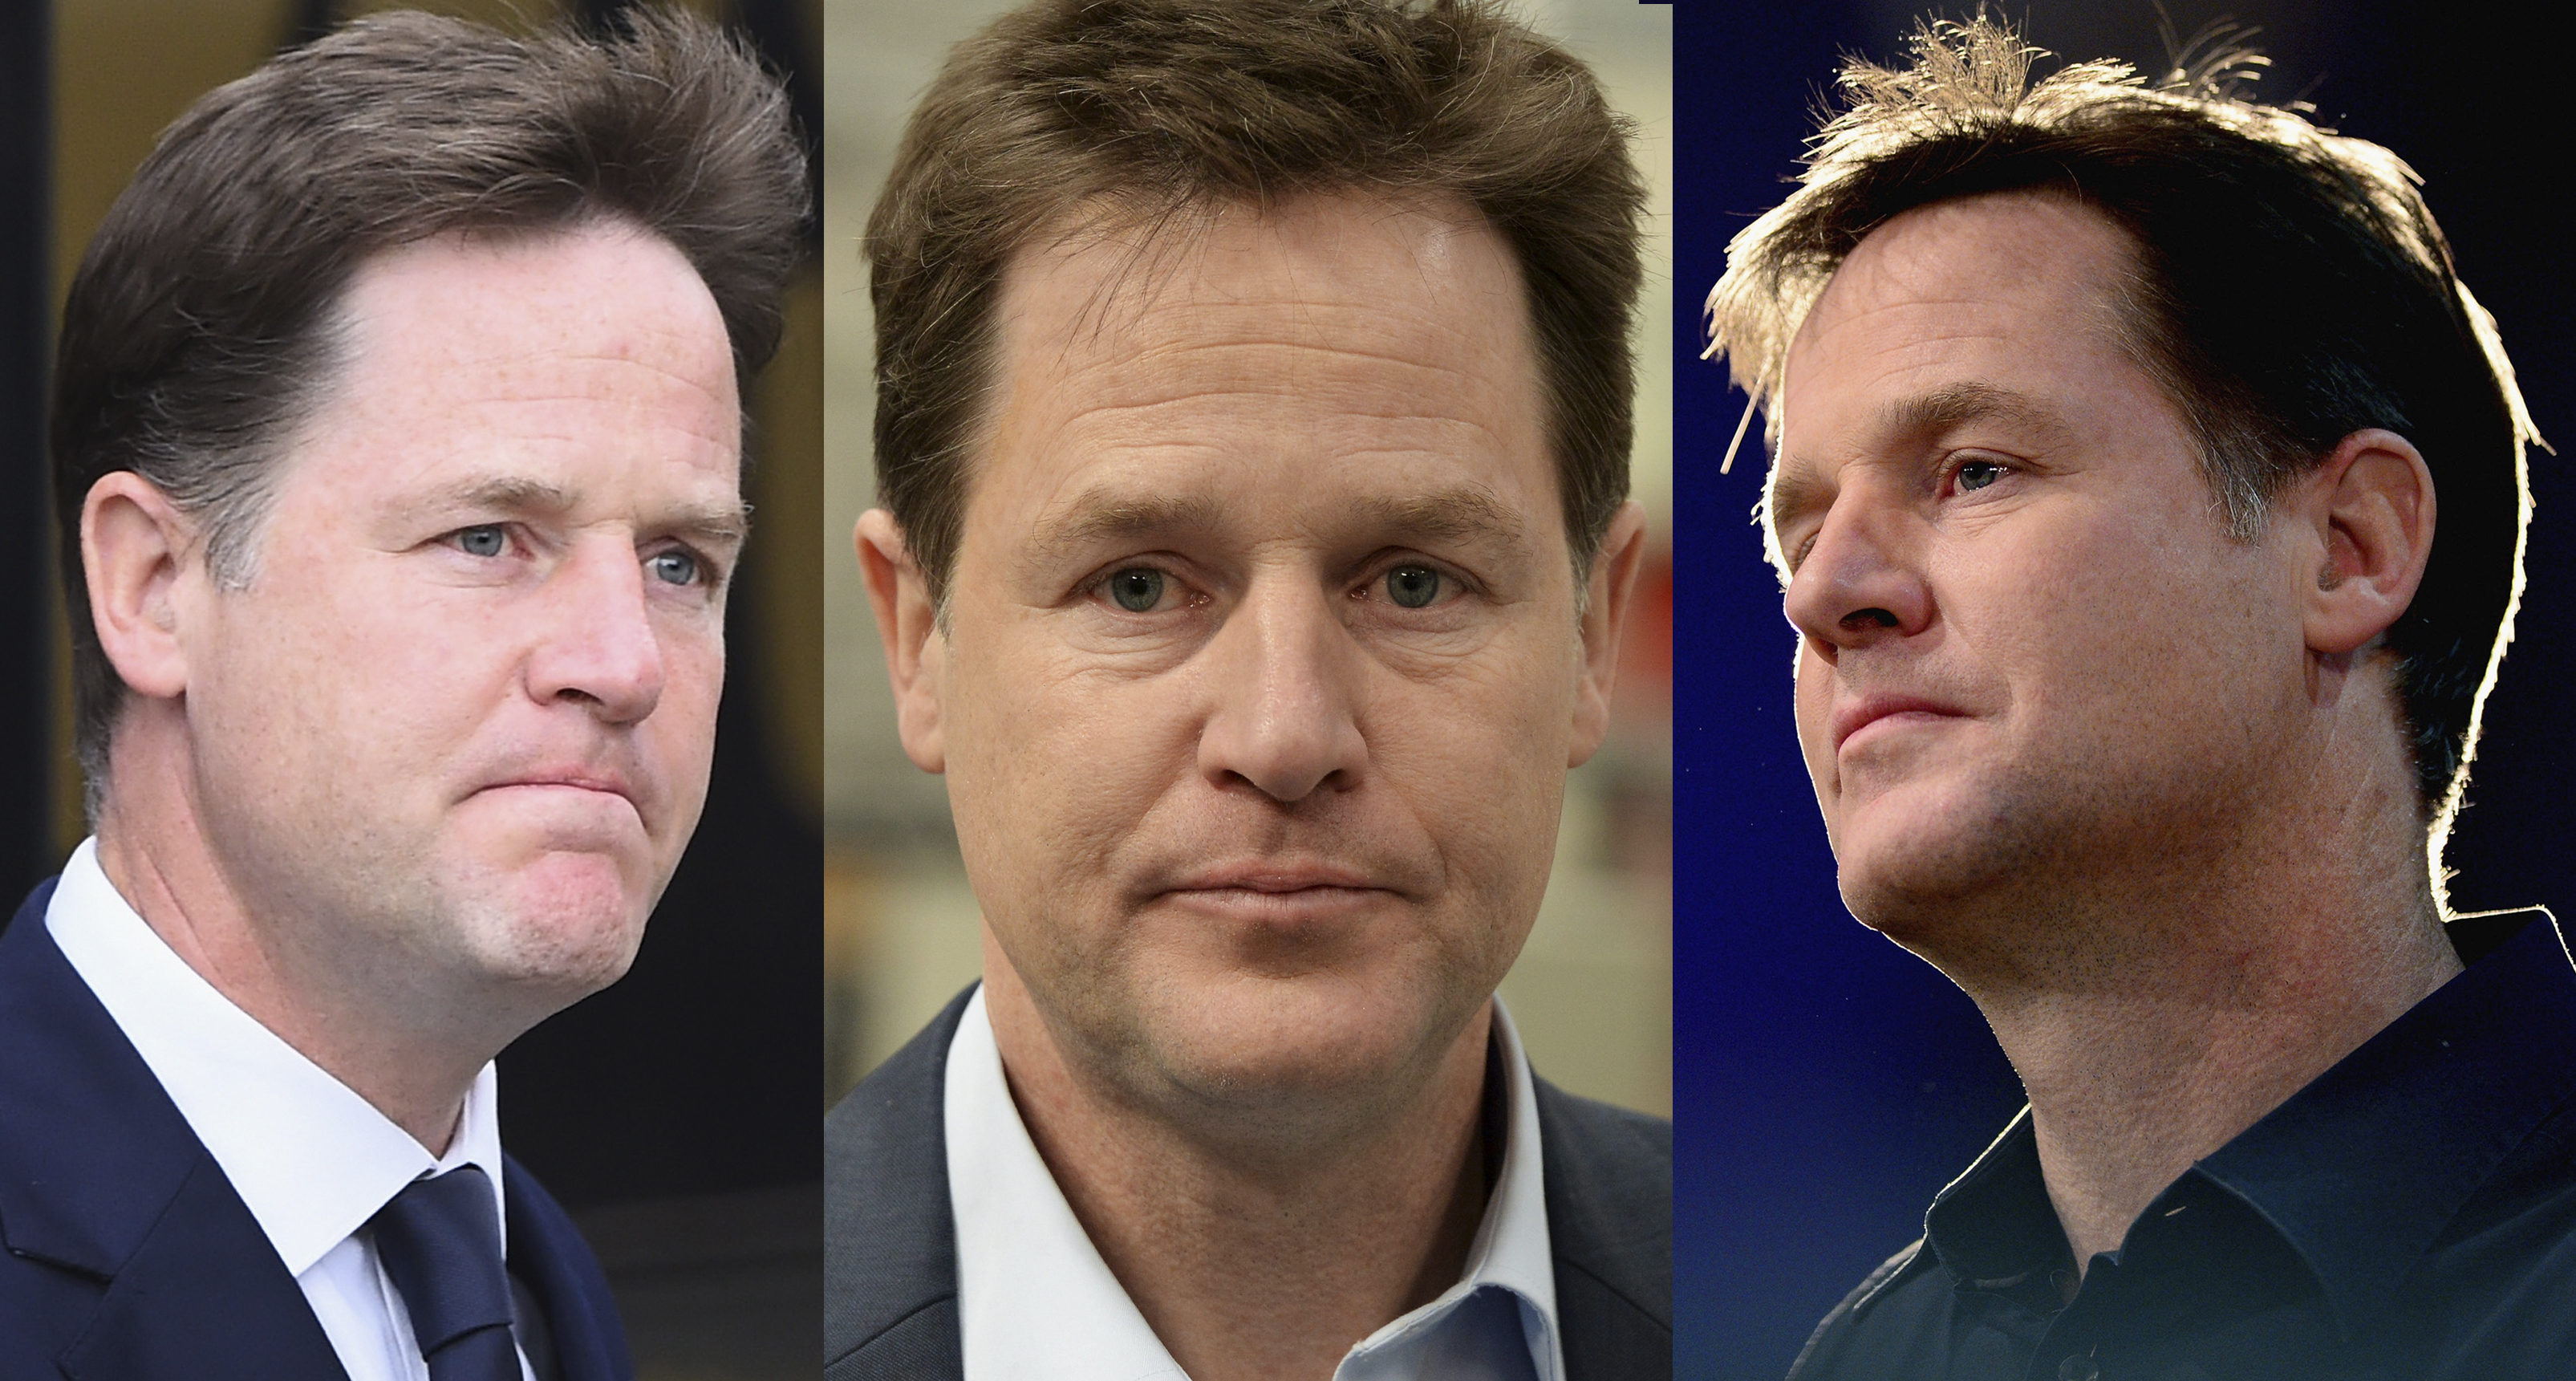 'Nick Clegg Looking Sad' Tumblr is back